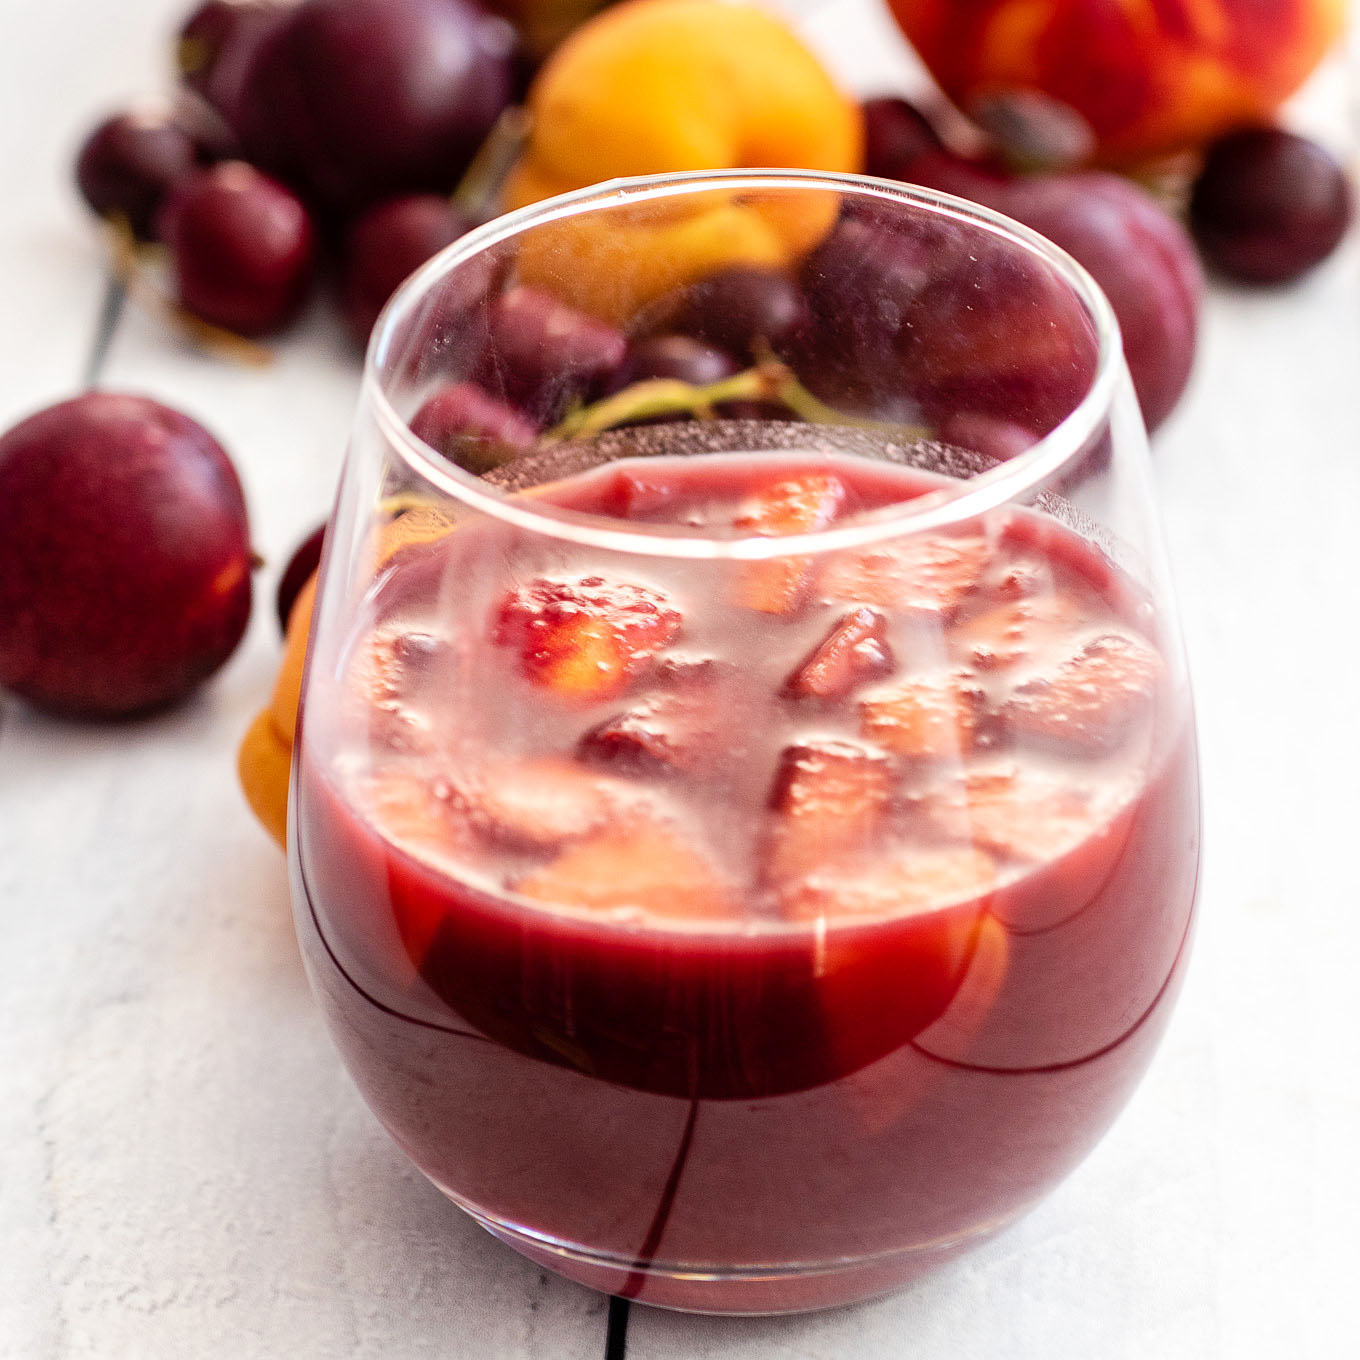 A close-up of a glass of grilled stone-fruit sangria with various stone fruits in the background